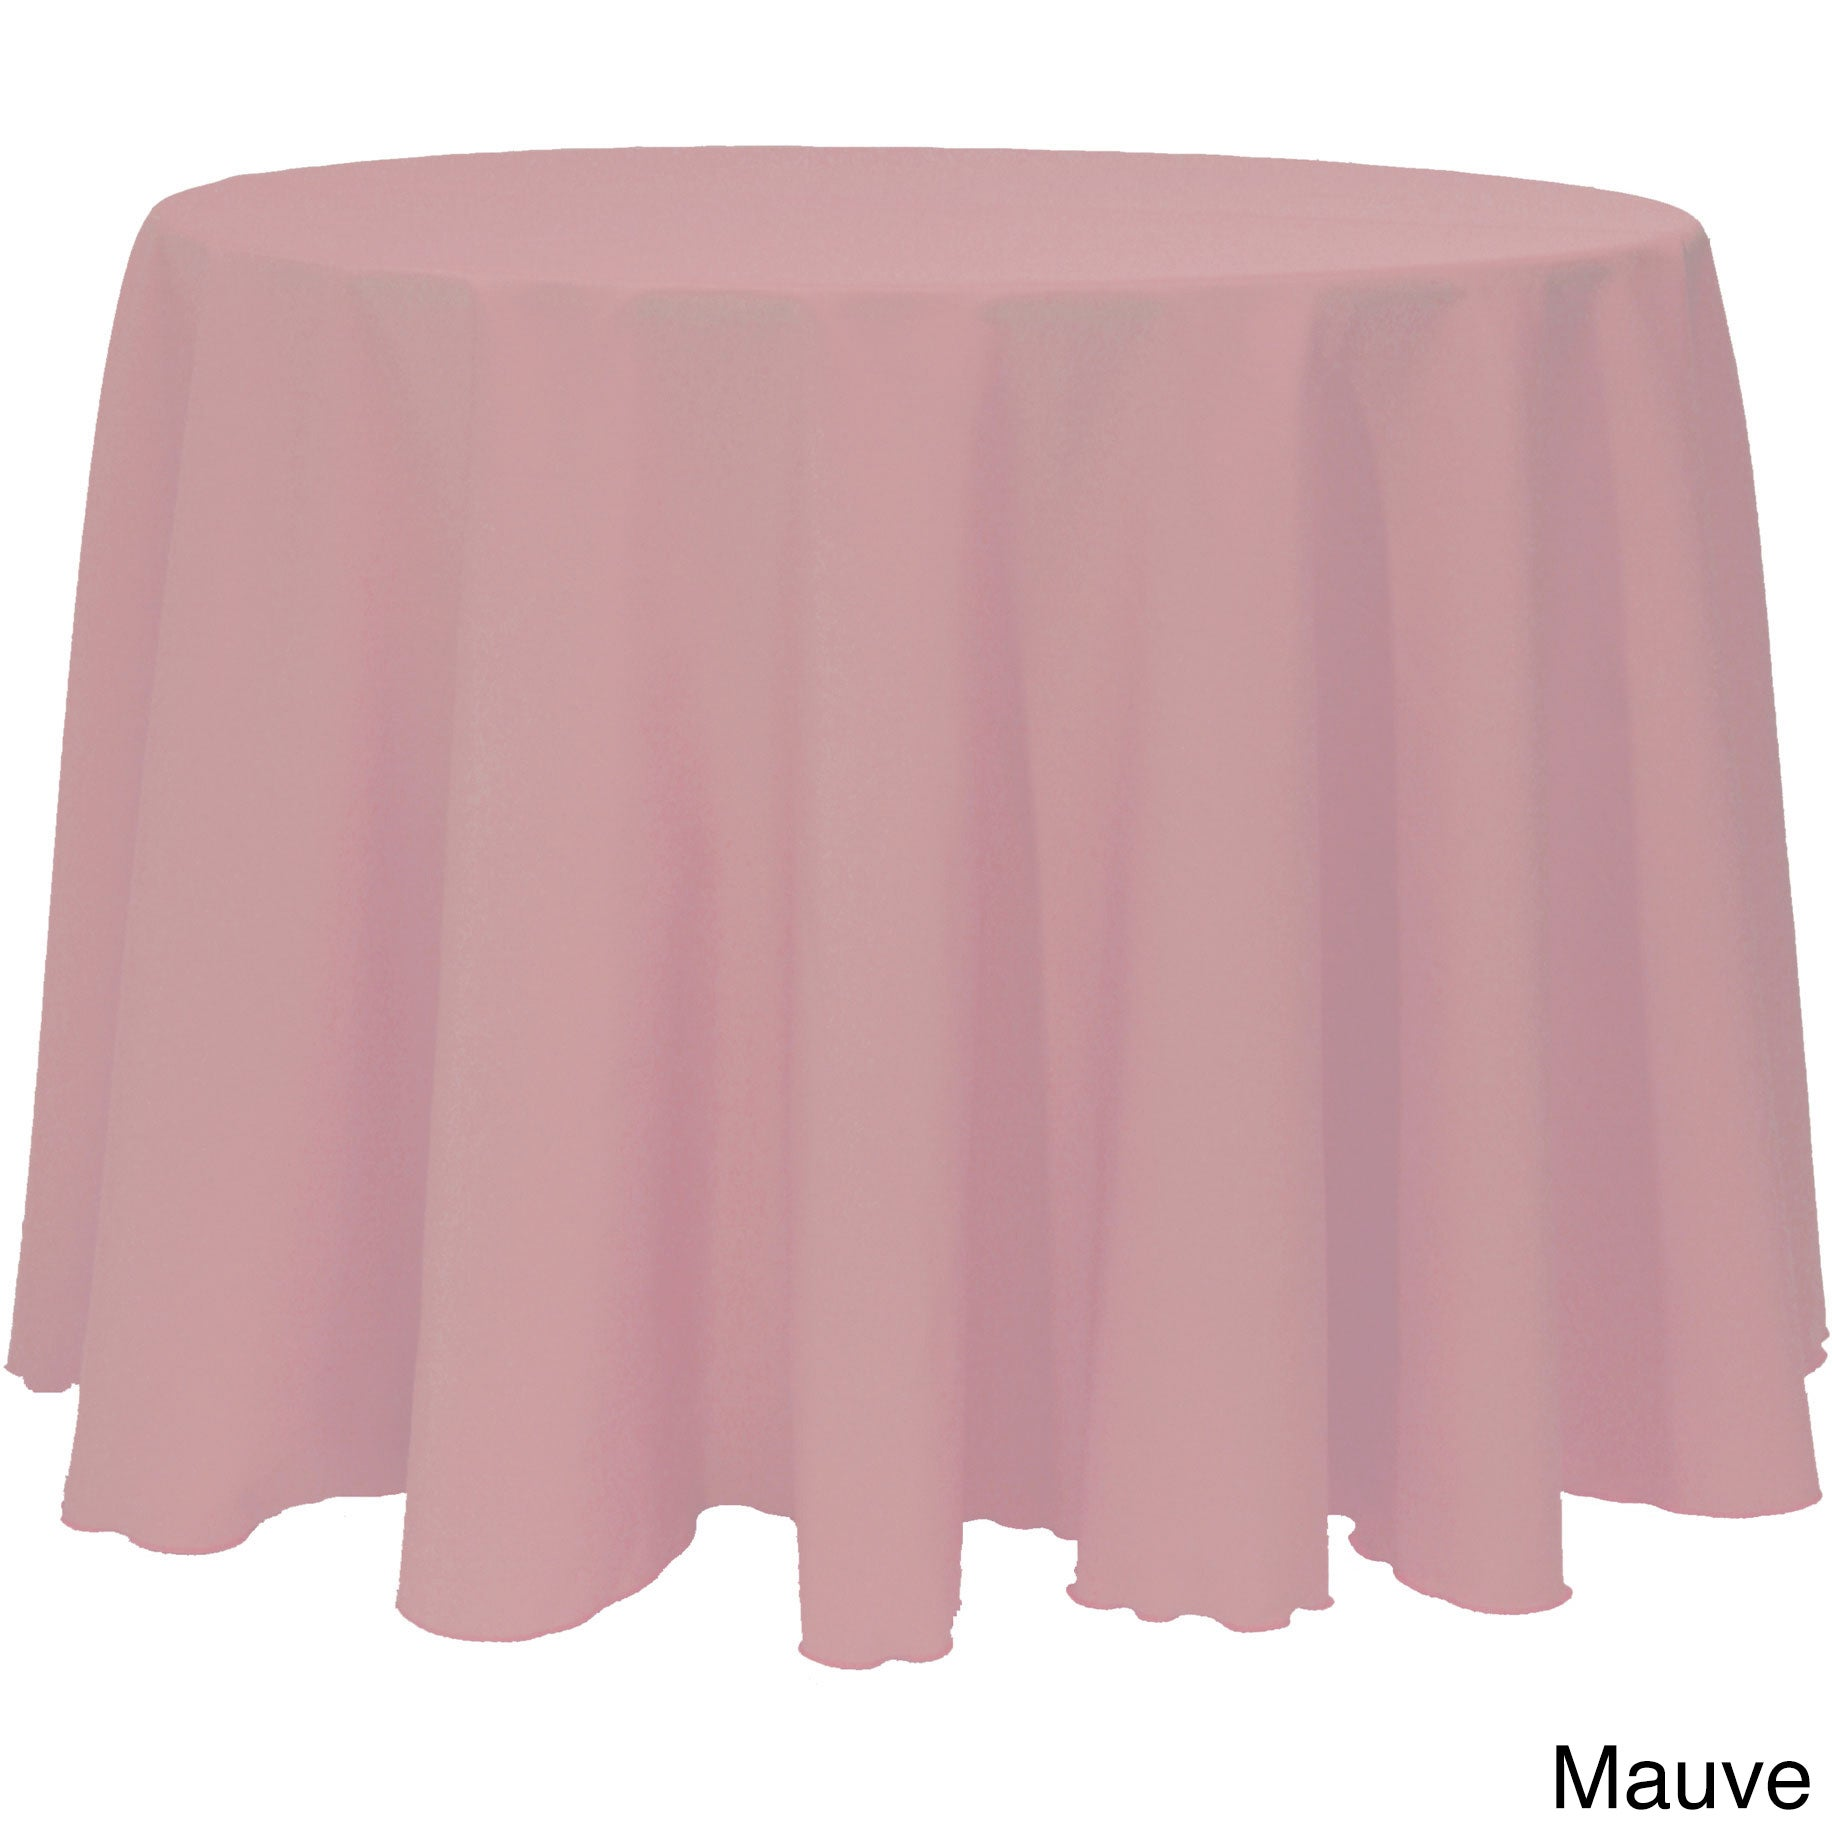 Beau Shop Solid Color 120 Inches Round Vibrant Color Tablecloth   Free Shipping  On Orders Over $45   Overstock.com   10222583